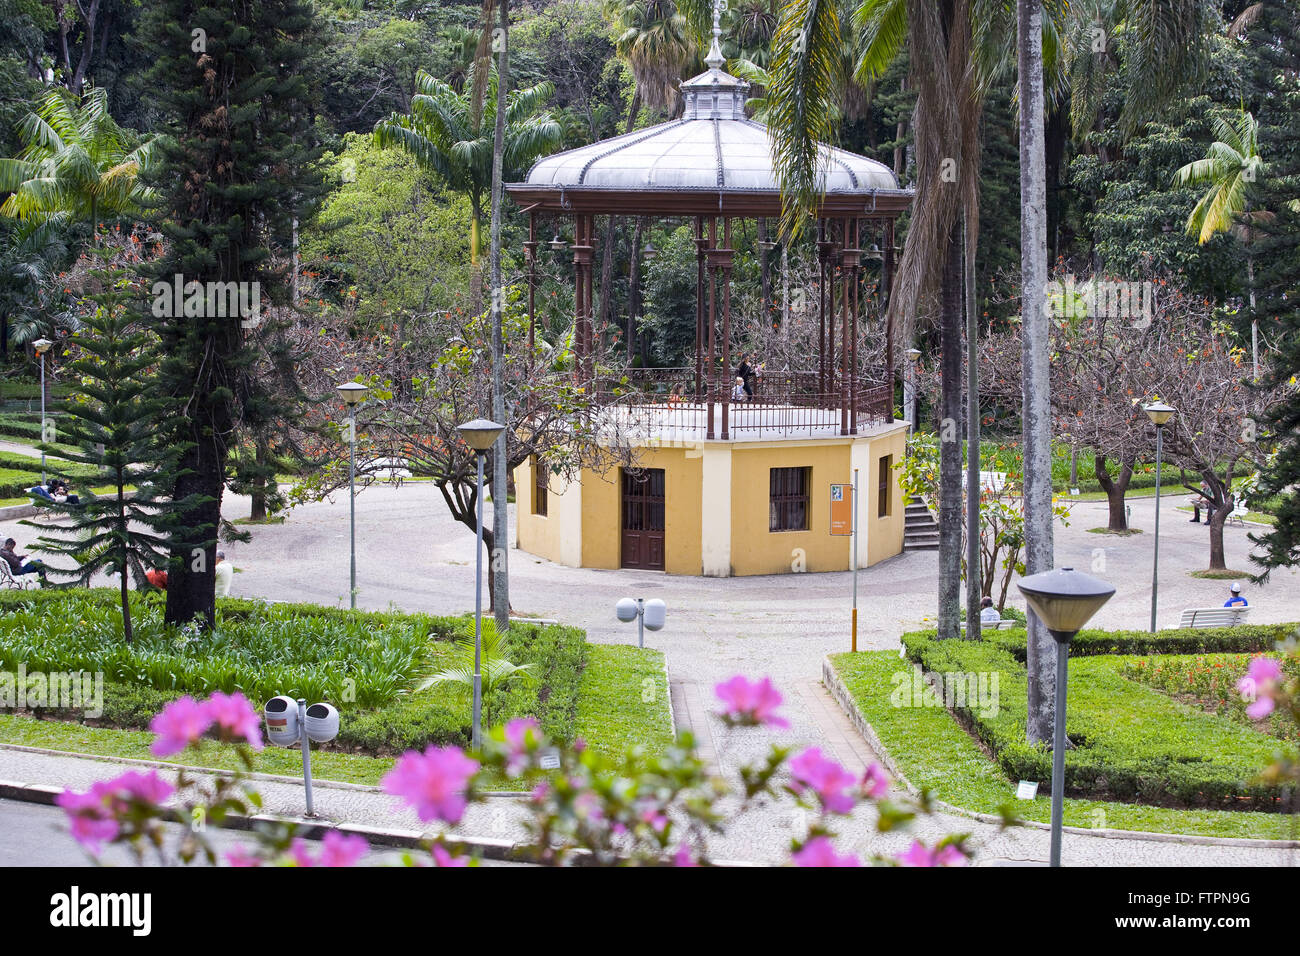 Bandstand in Americo Renne Giannetti Municipal Park in the city center - Stock Image